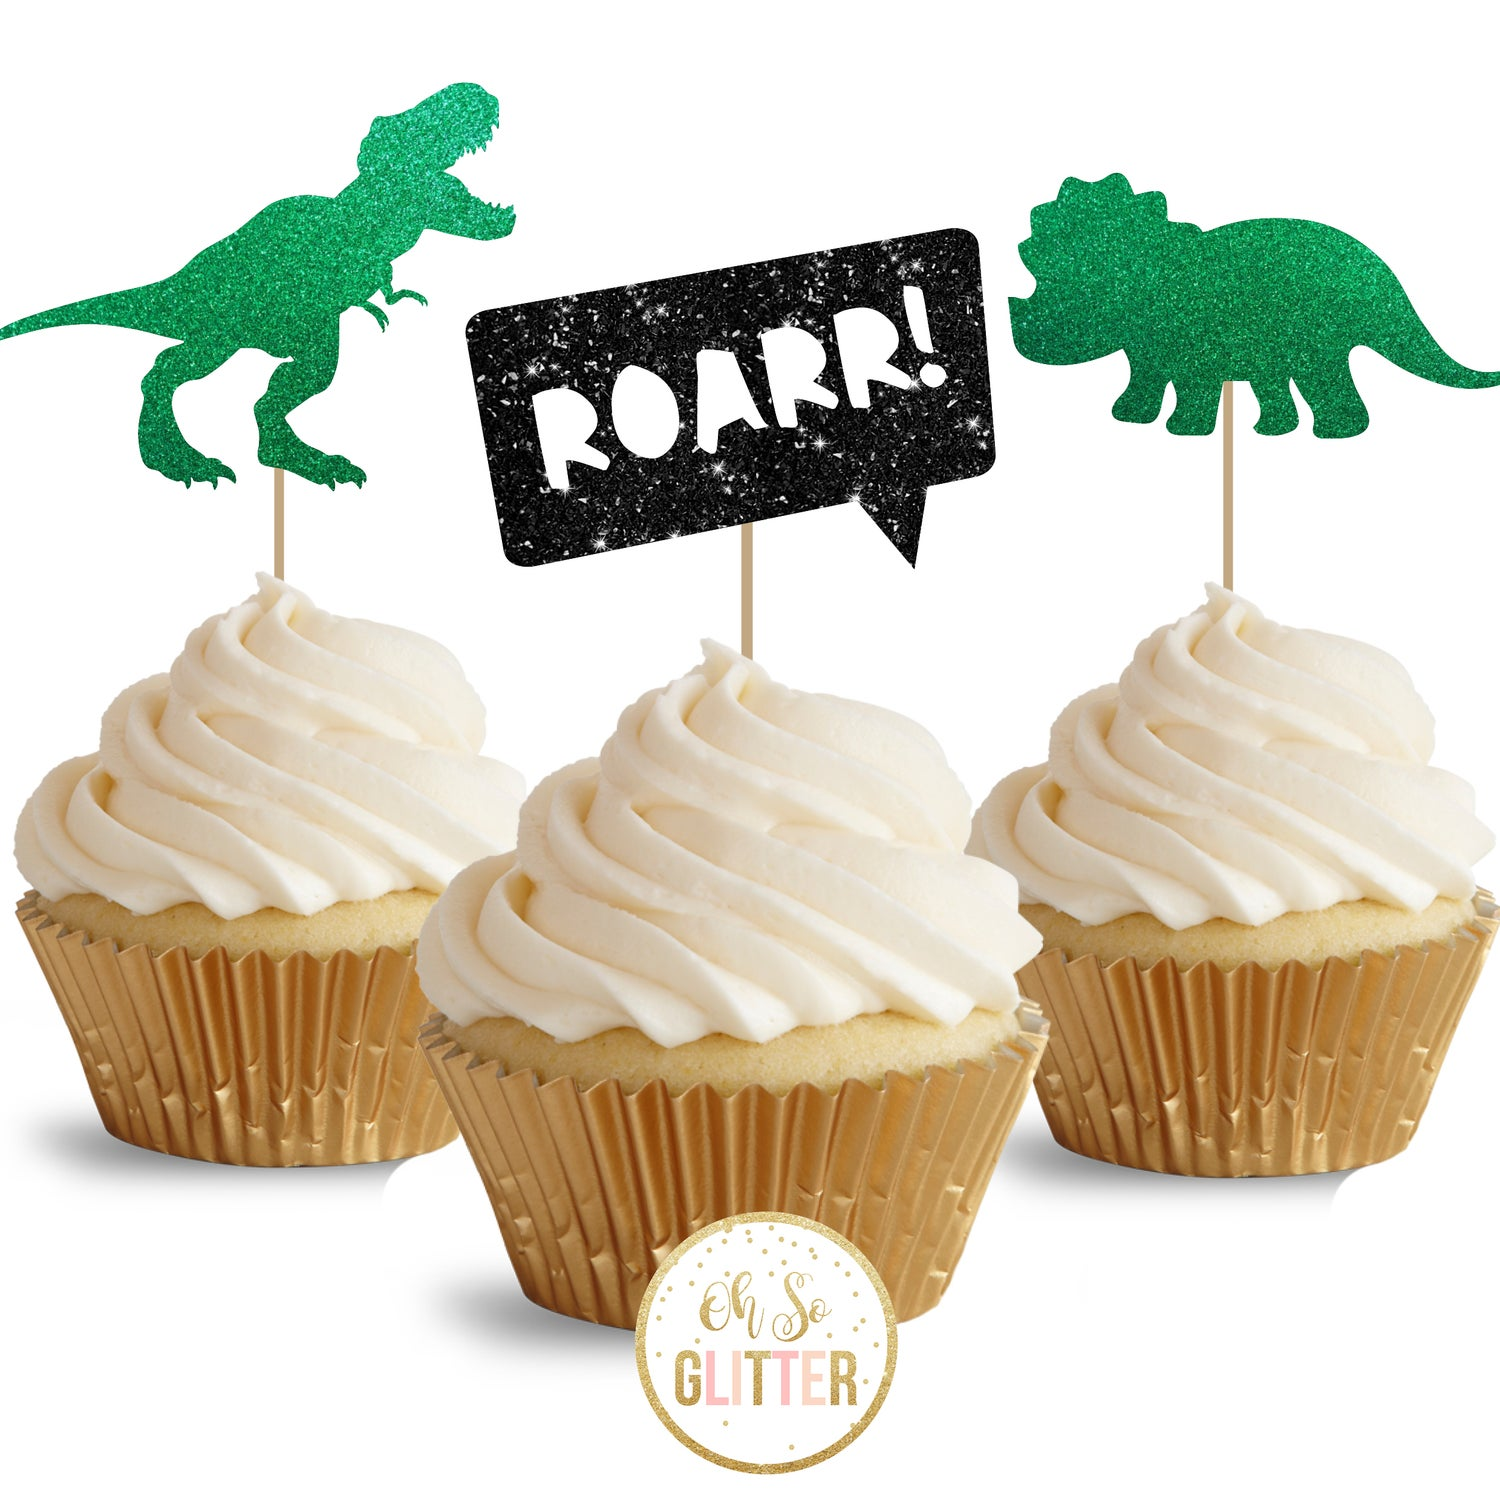 Image of Dinosaur glitter cupcake toppers - pack of 12